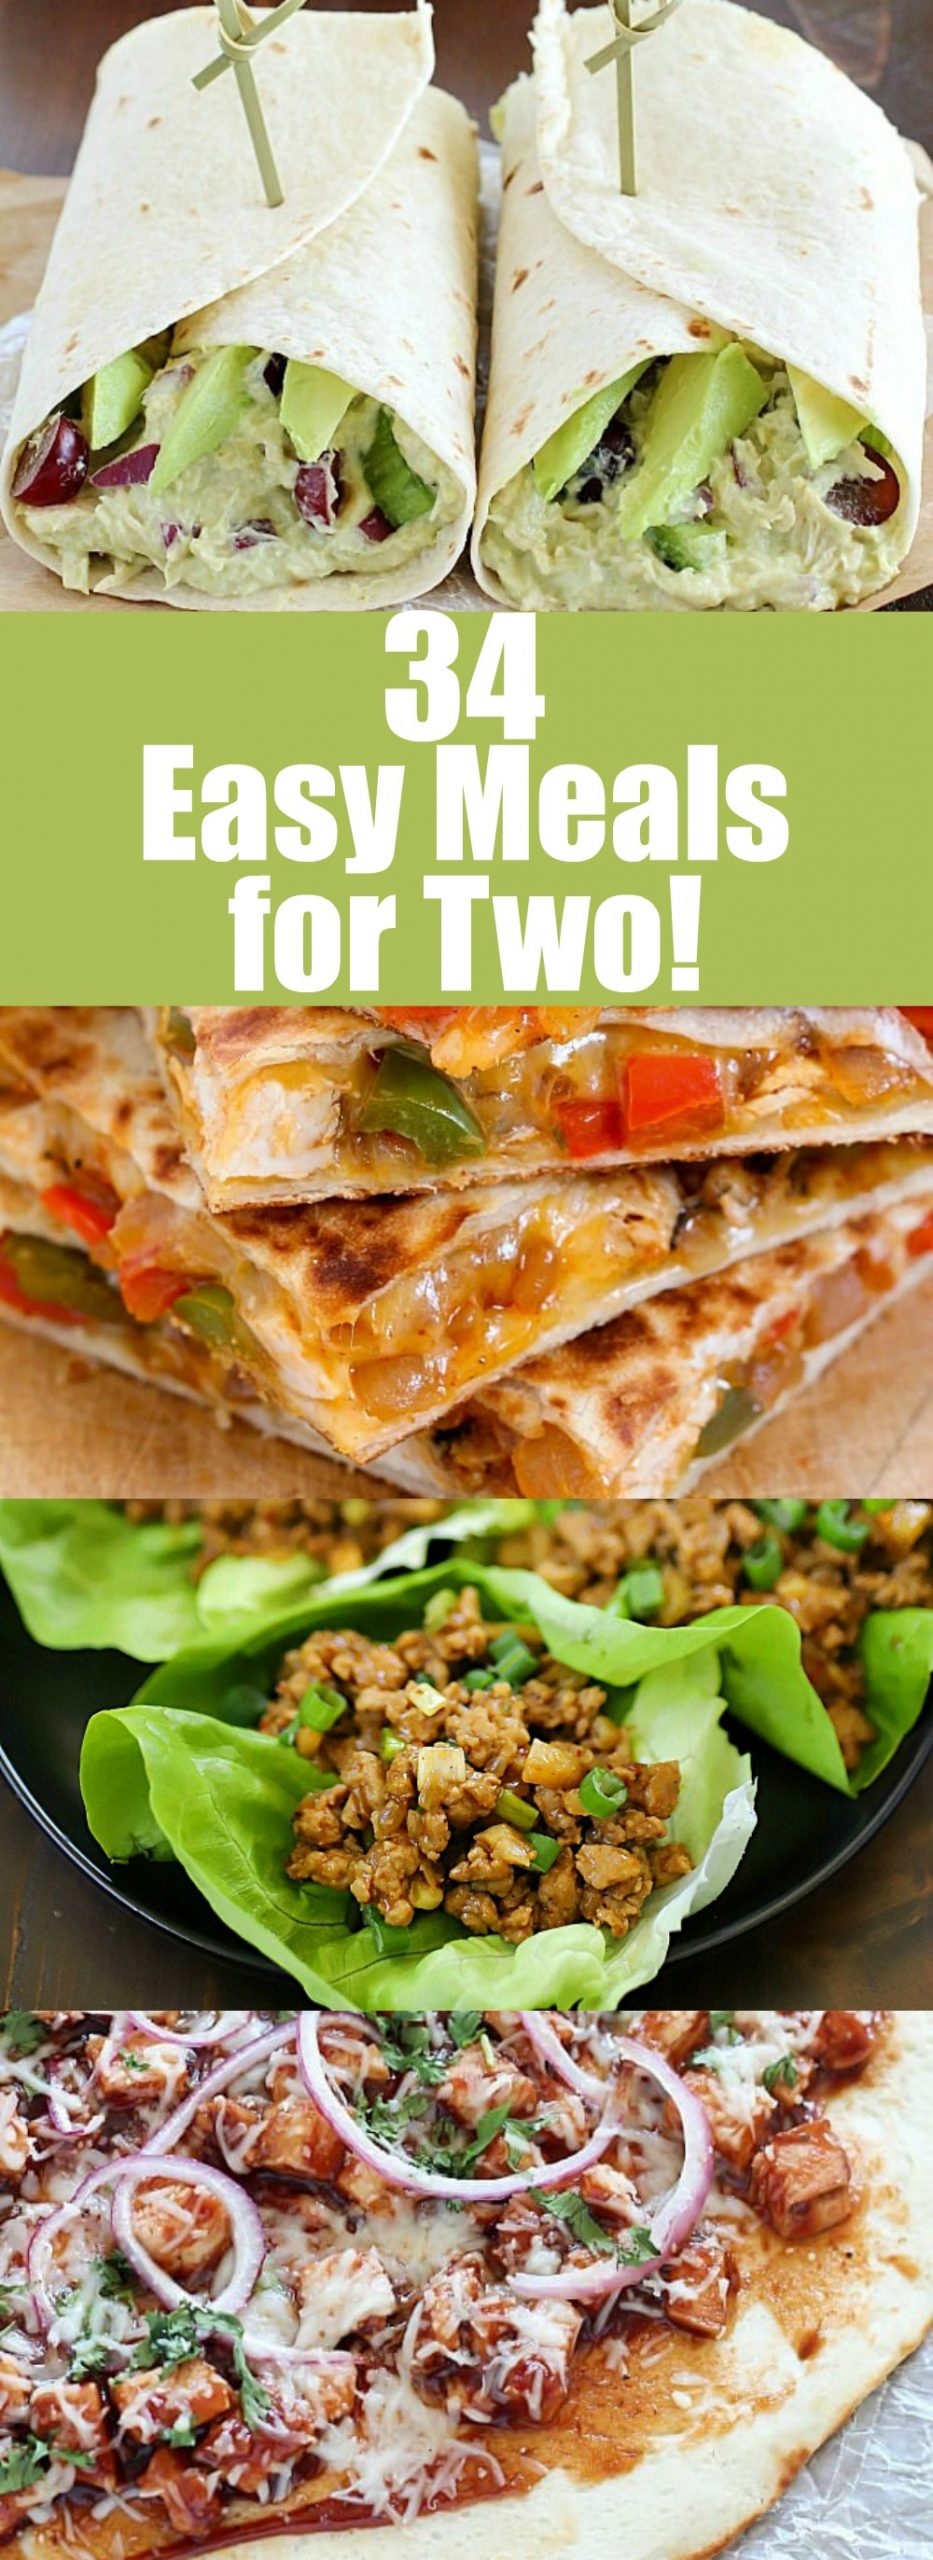 Need a smaller meal to cook at home? Here are 34+ easy meals for two that are sure to help you out in the kitchen! Healthy meals for two are a great way to show your love to your loved one and share a great meal with the person you want to be with. I decided to do a roundup post on recipes that gear toward recipes that are for people that only need a few servings and make some really great leftovers. :) #roundup #leftovers #dinnersfortwo #easydinner #dinner #healthydinner via @jennikolaus